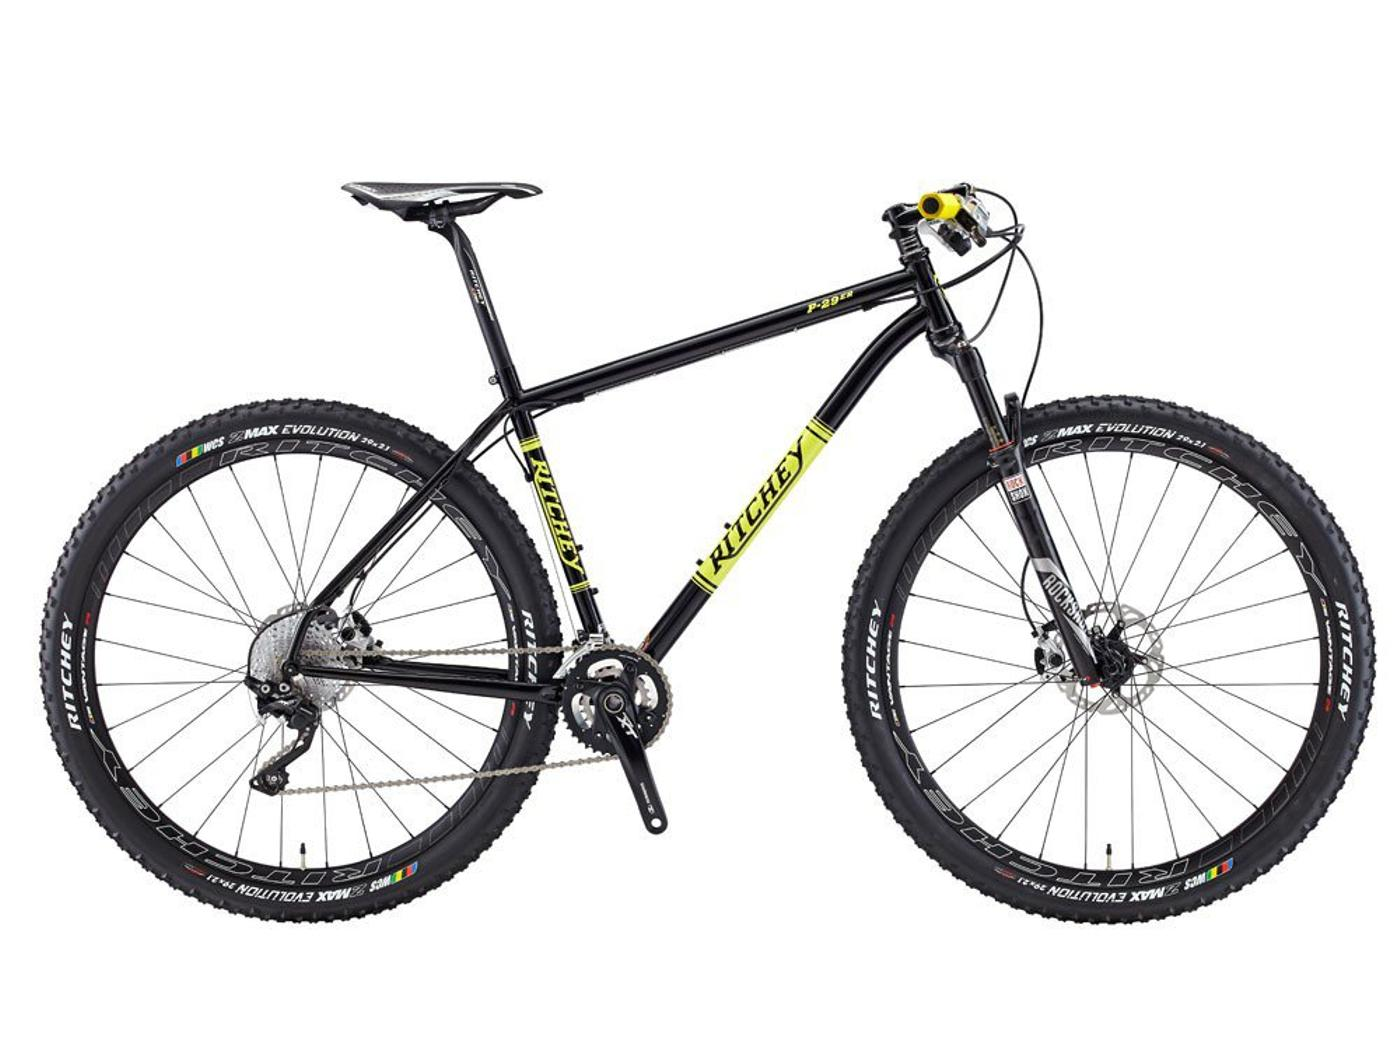 Ritchey: P-29er Completes in Stock